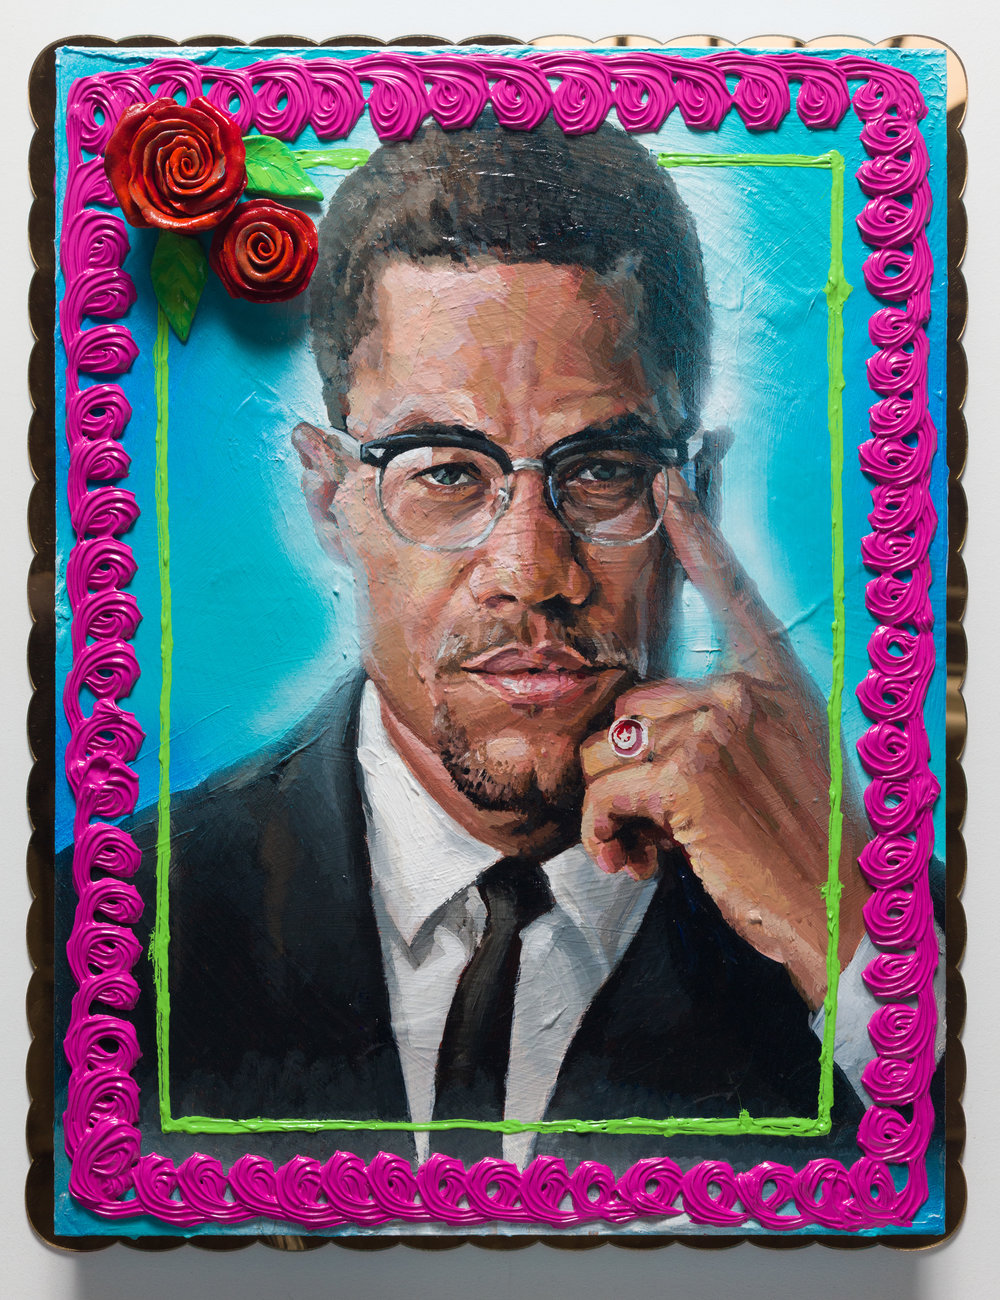 Patrick Martinez, Malcolm X Cake, 2019. Heavy body acrylic, acrylic, airbrush, and ceramic cake roses on panel with gold mirror plex. Courtesy of the artist and Fort Gansevoort, New York.